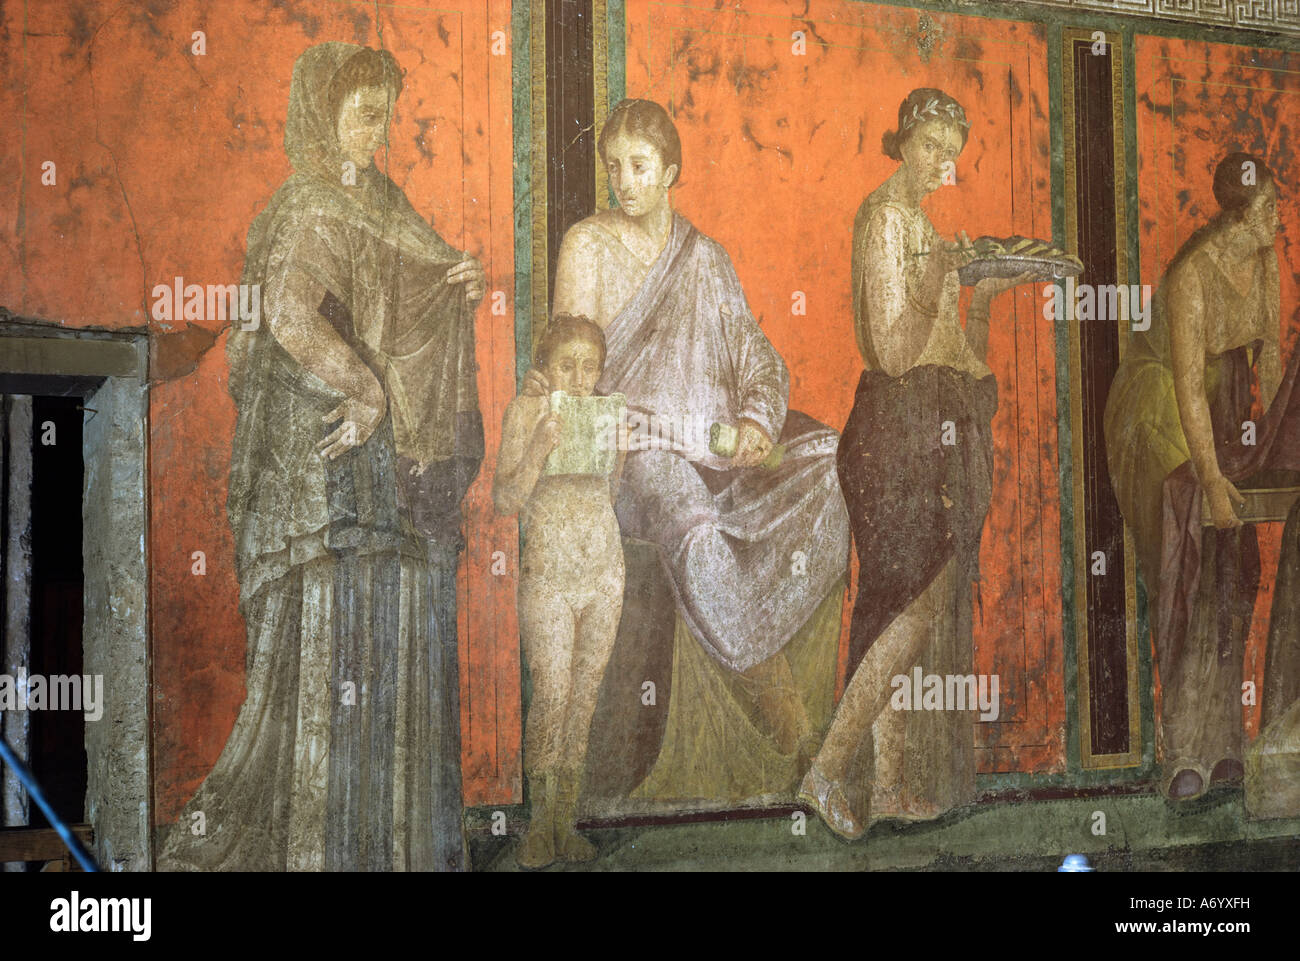 Wall paintings Villa of the Mysteries Pompeii UNESCO World Heritage Site Campania Italy Europe - Stock Image